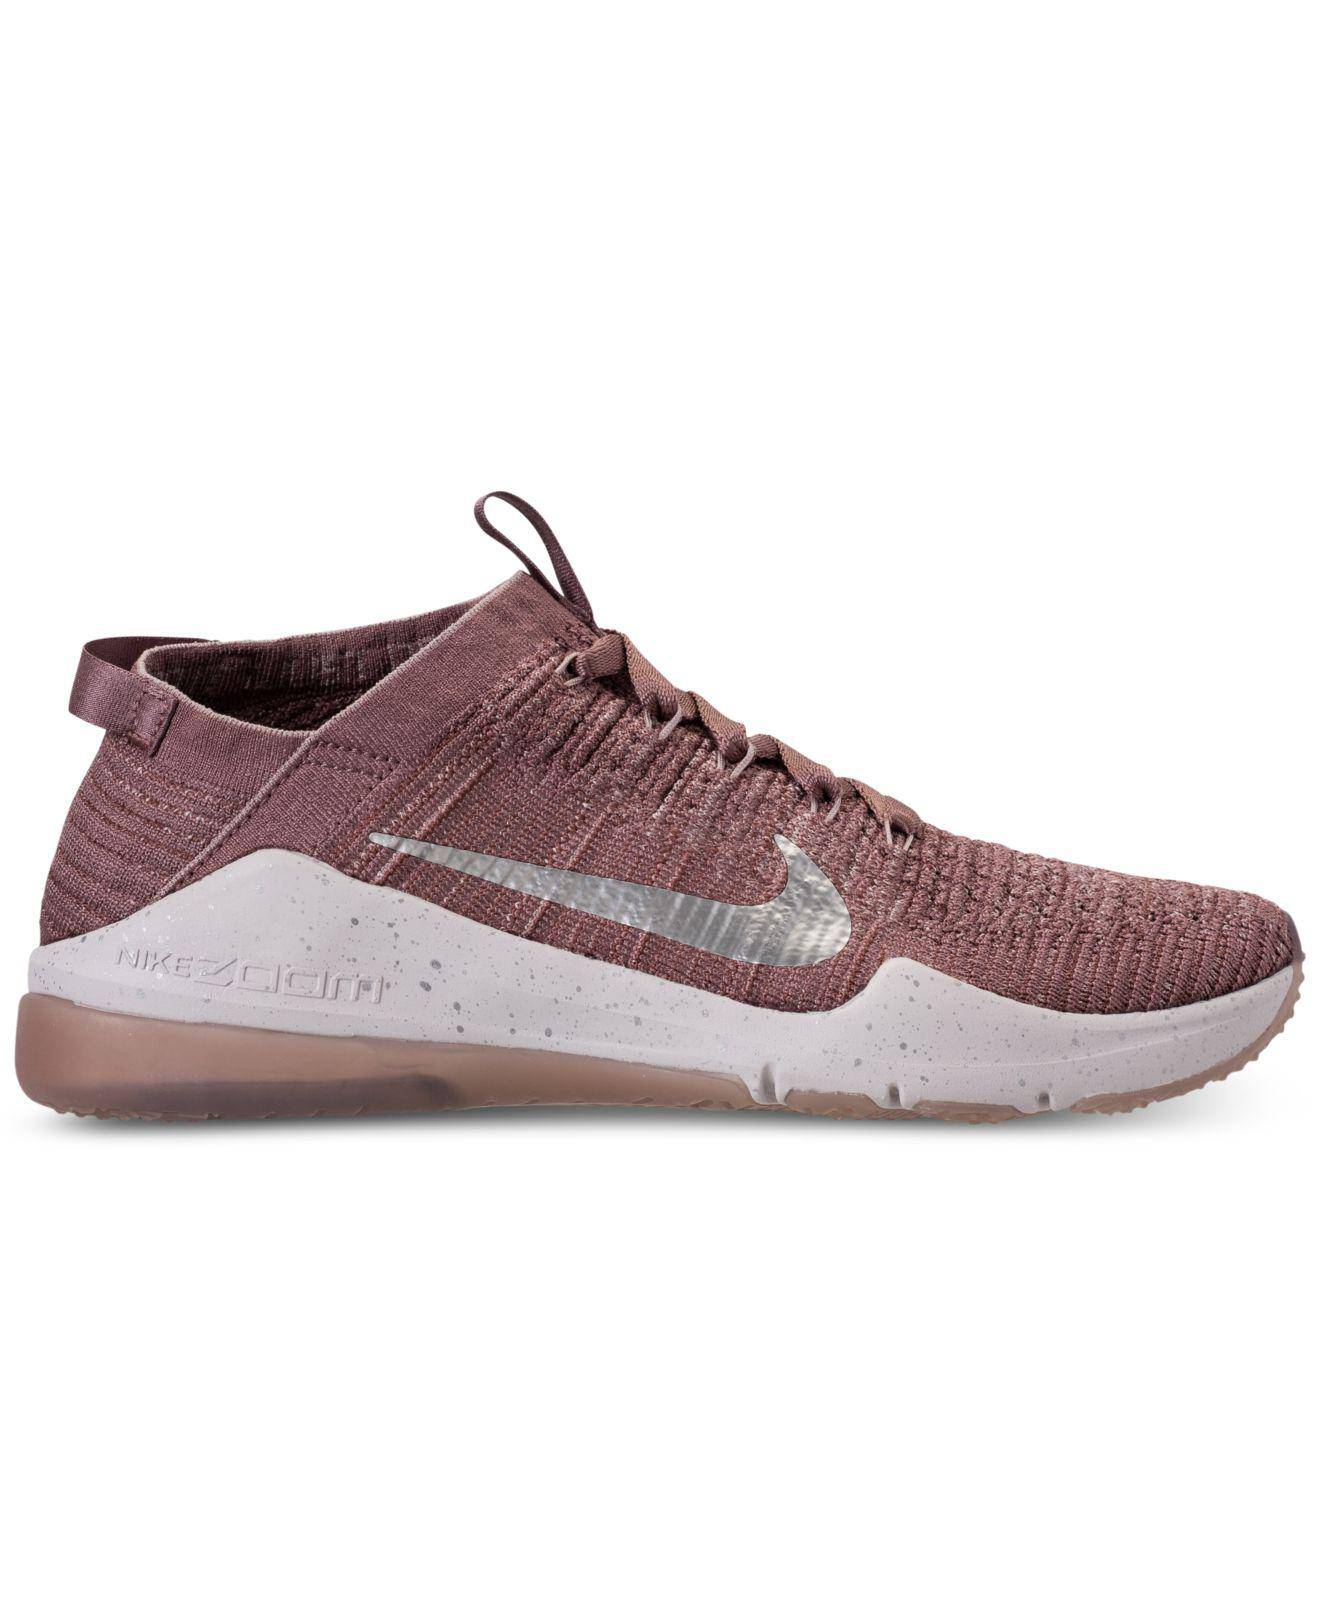 bb81e657c50a6 Lyst - Nike Air Zoom Fearless Flyknit 2 Lm Running Sneakers From ...